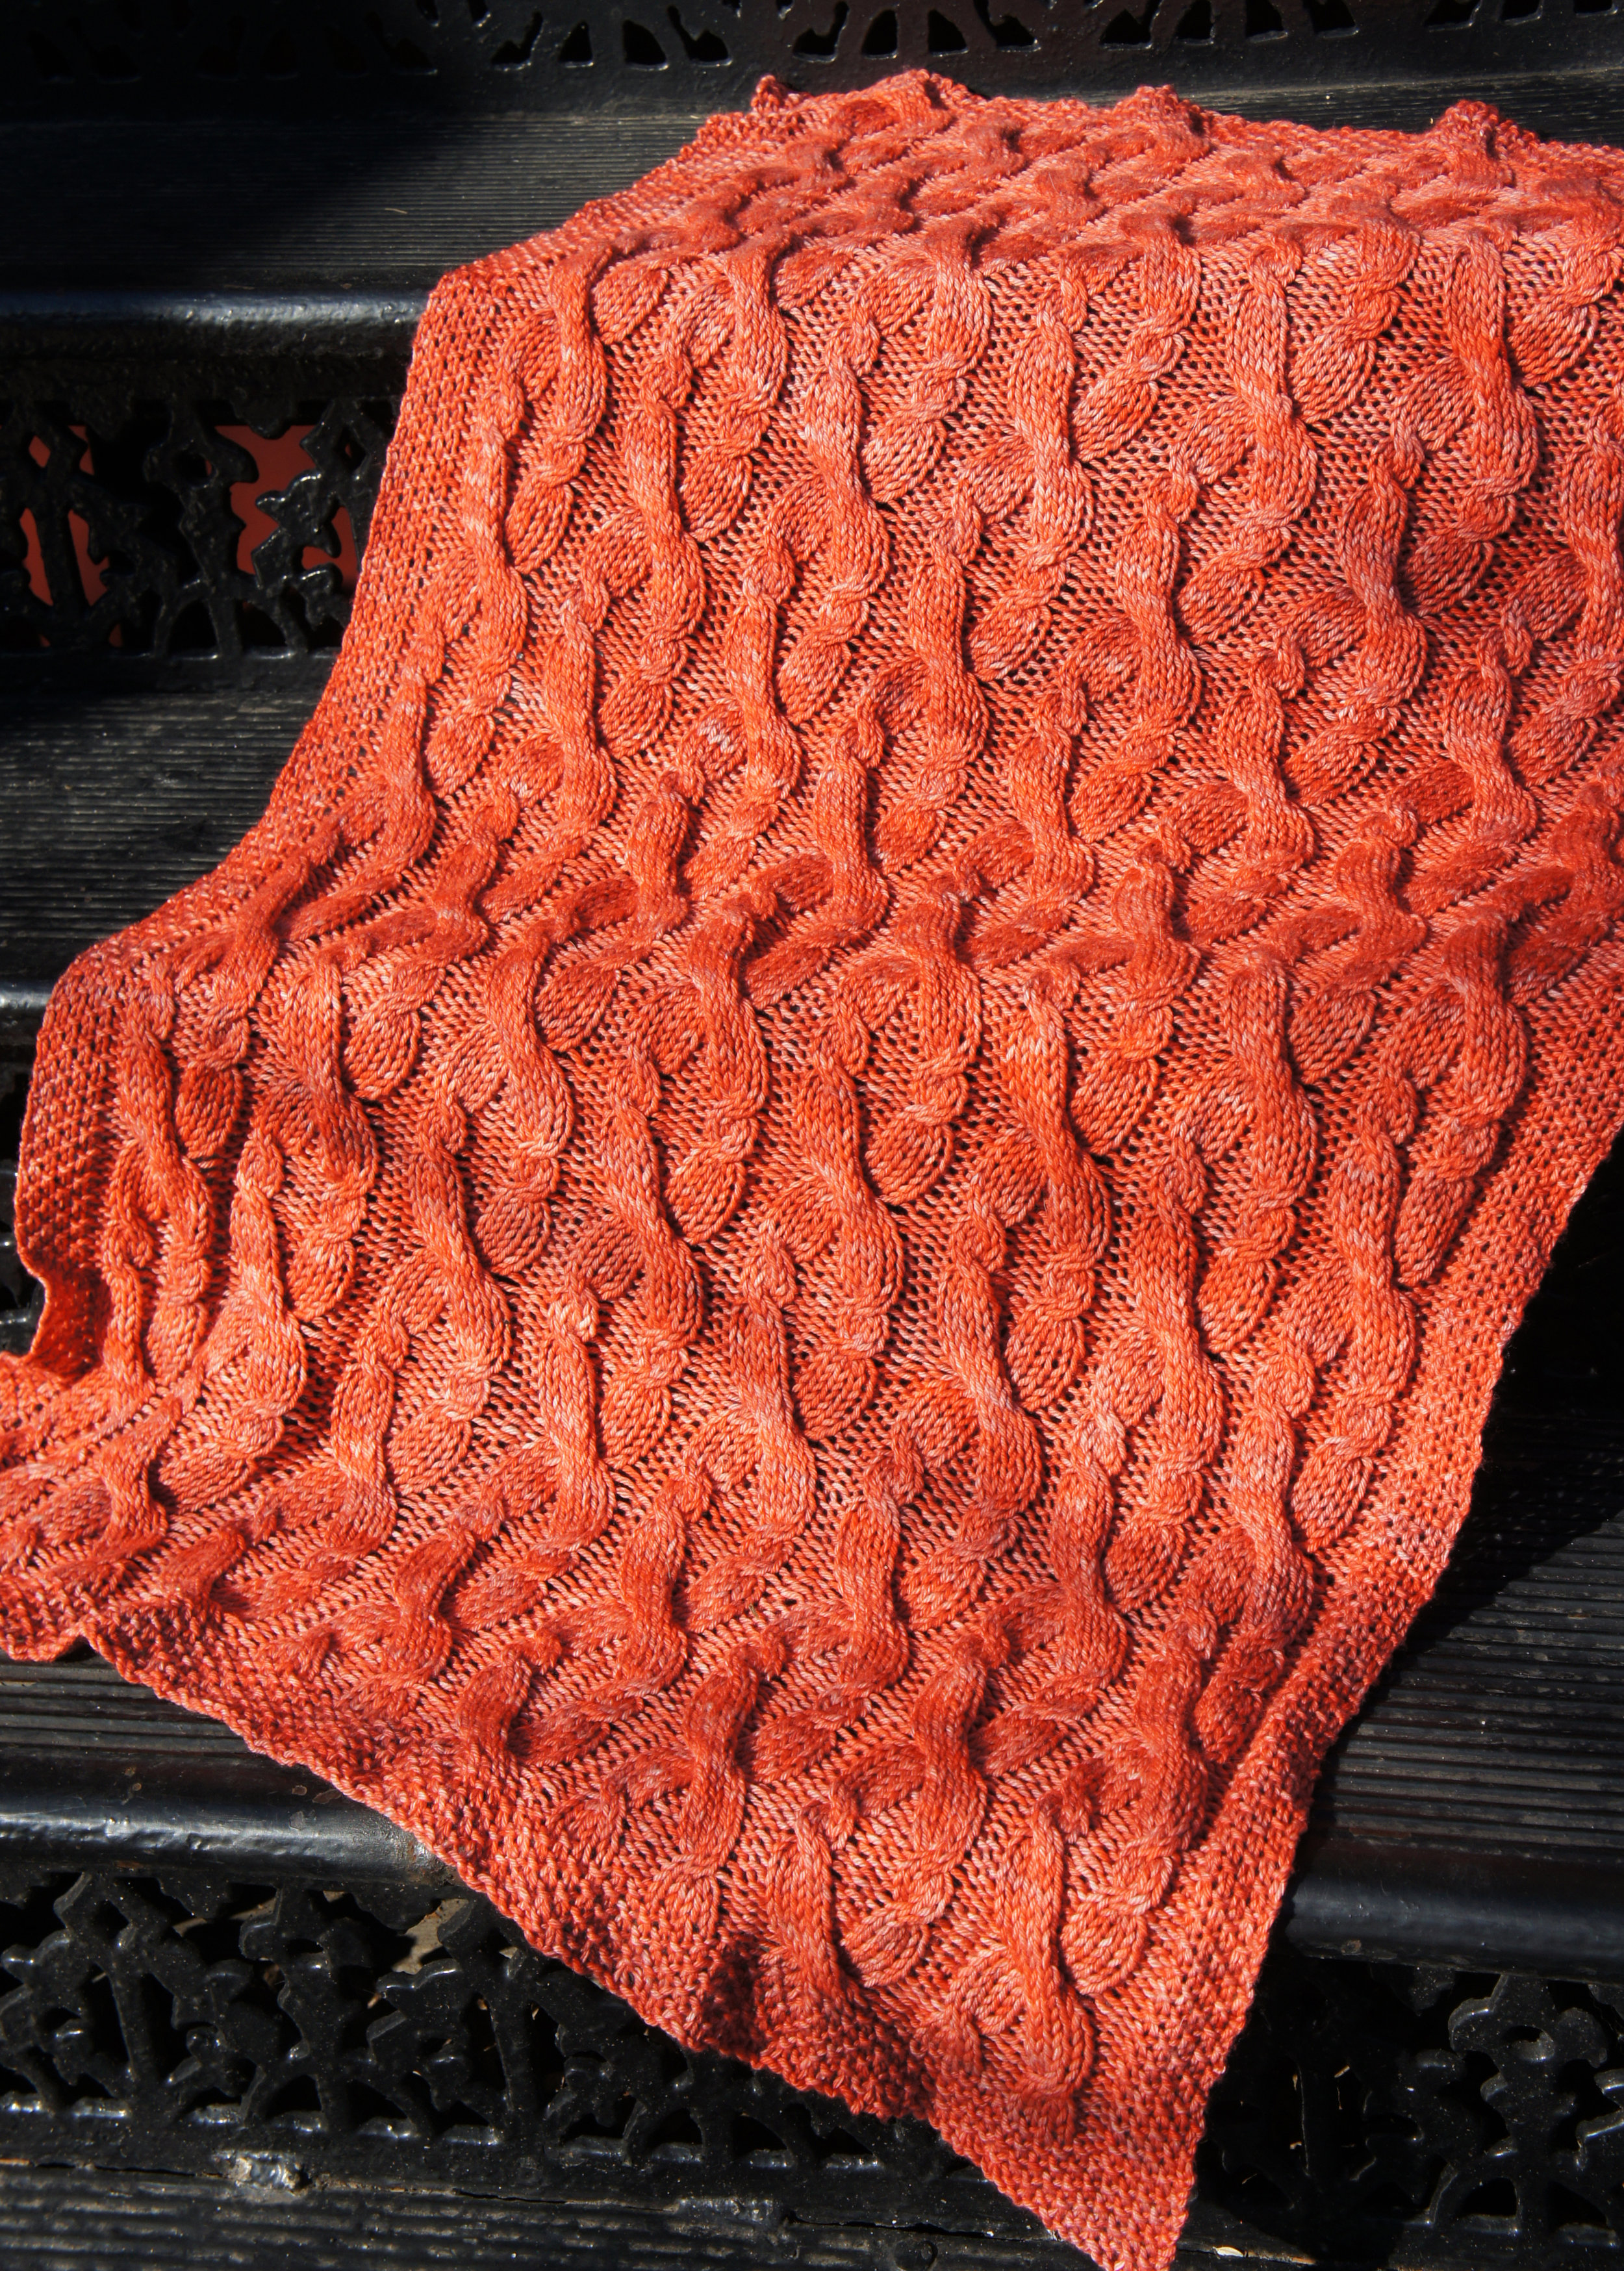 Kinderhook Blanket